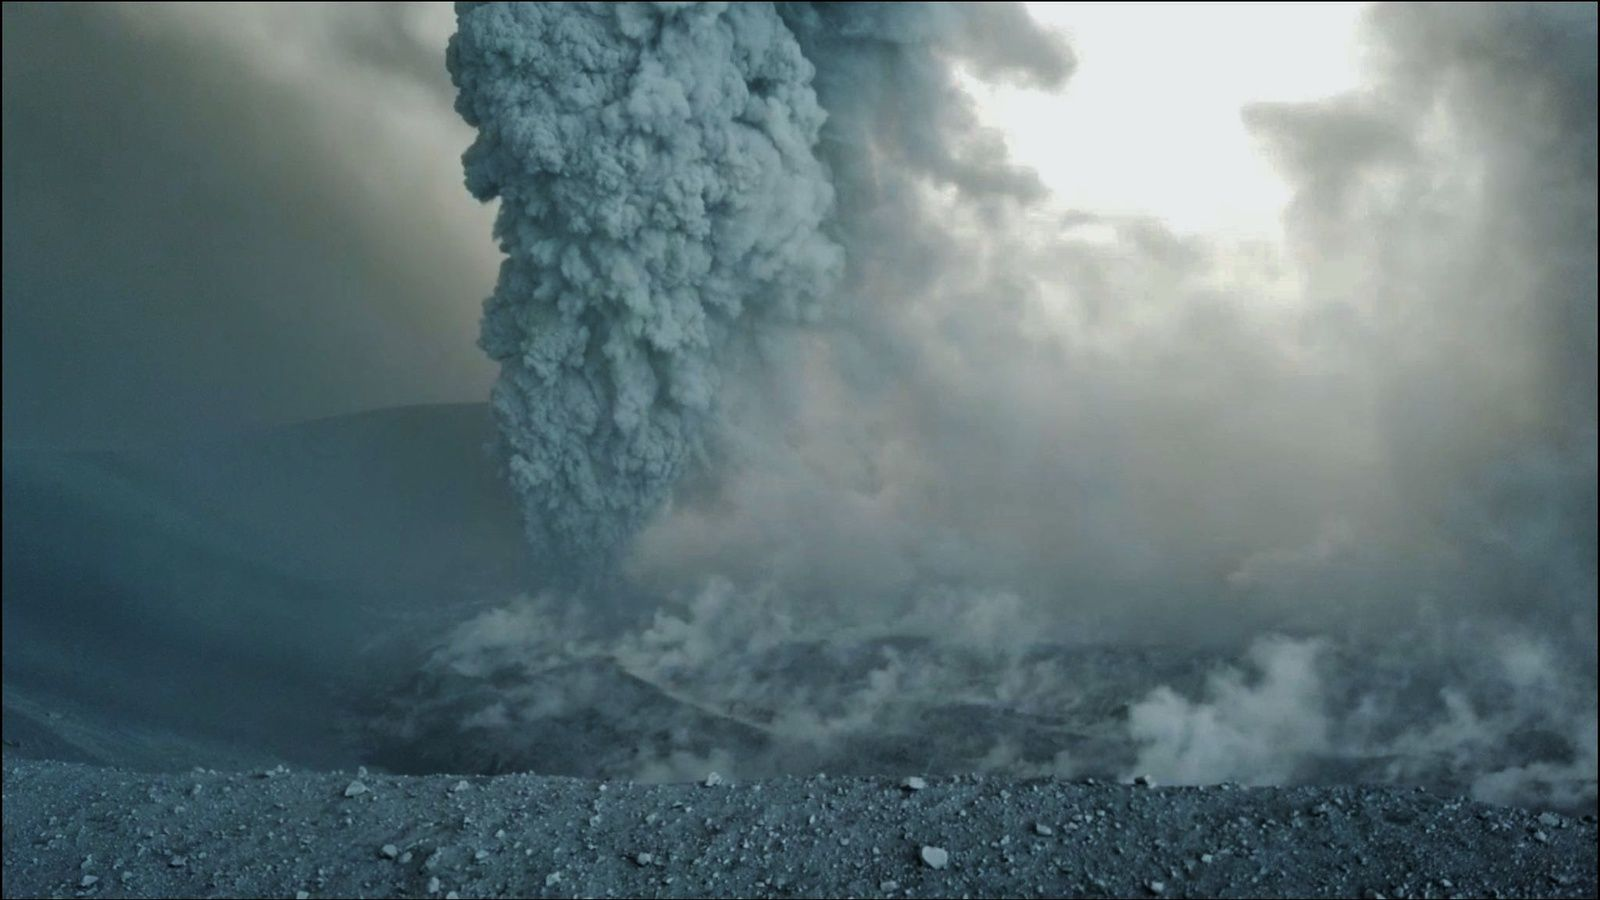 Shinmoedake-Kirishima - the plume of ash and other sources of fumaroles in the crater - 12.10.2017 photo J.Reynolds - EarthUncutTV